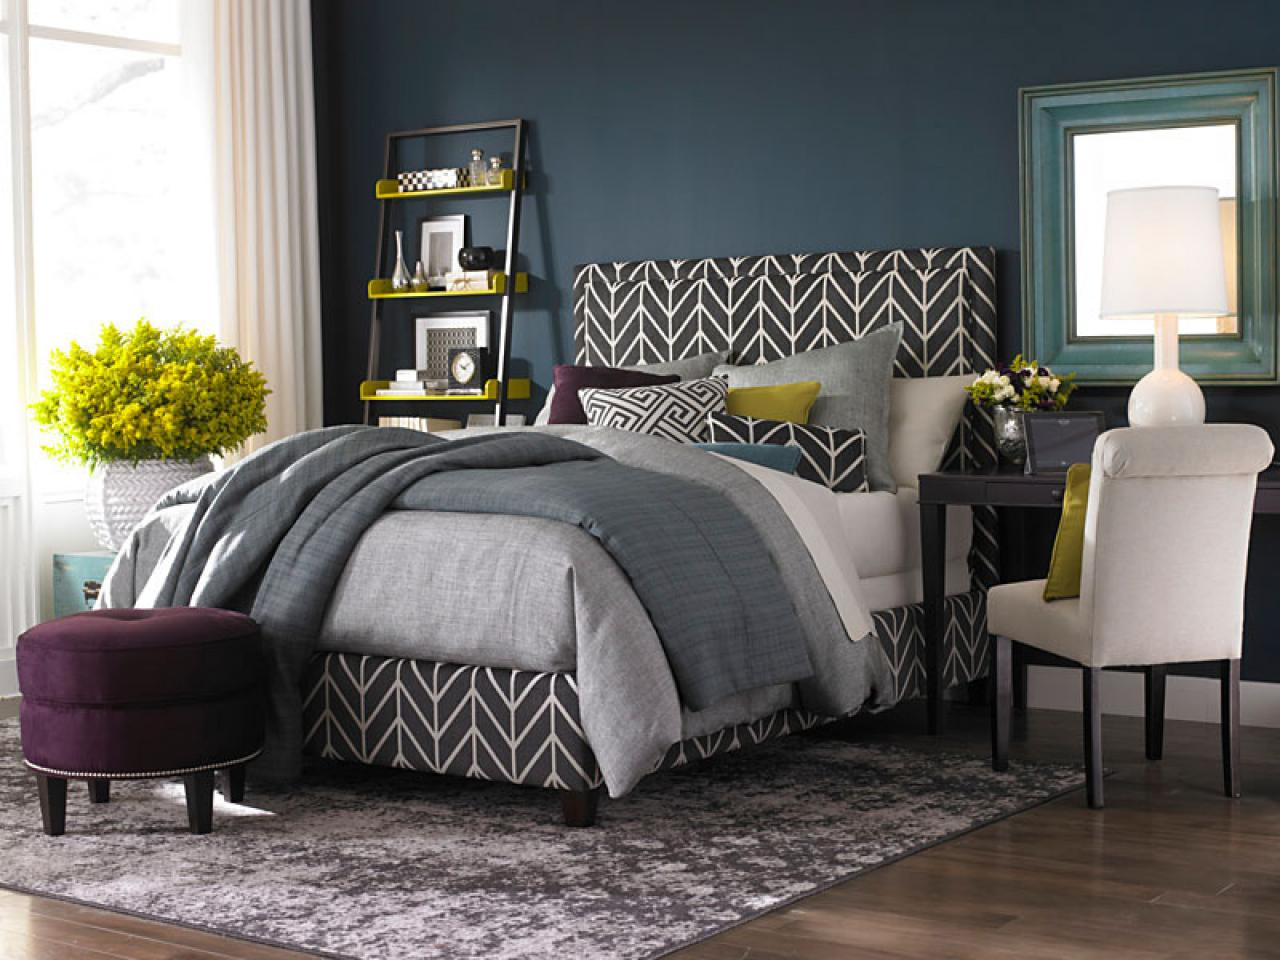 Designing The Bedroom As A Couple Hgtv S Decorating Design Blog Hgtv